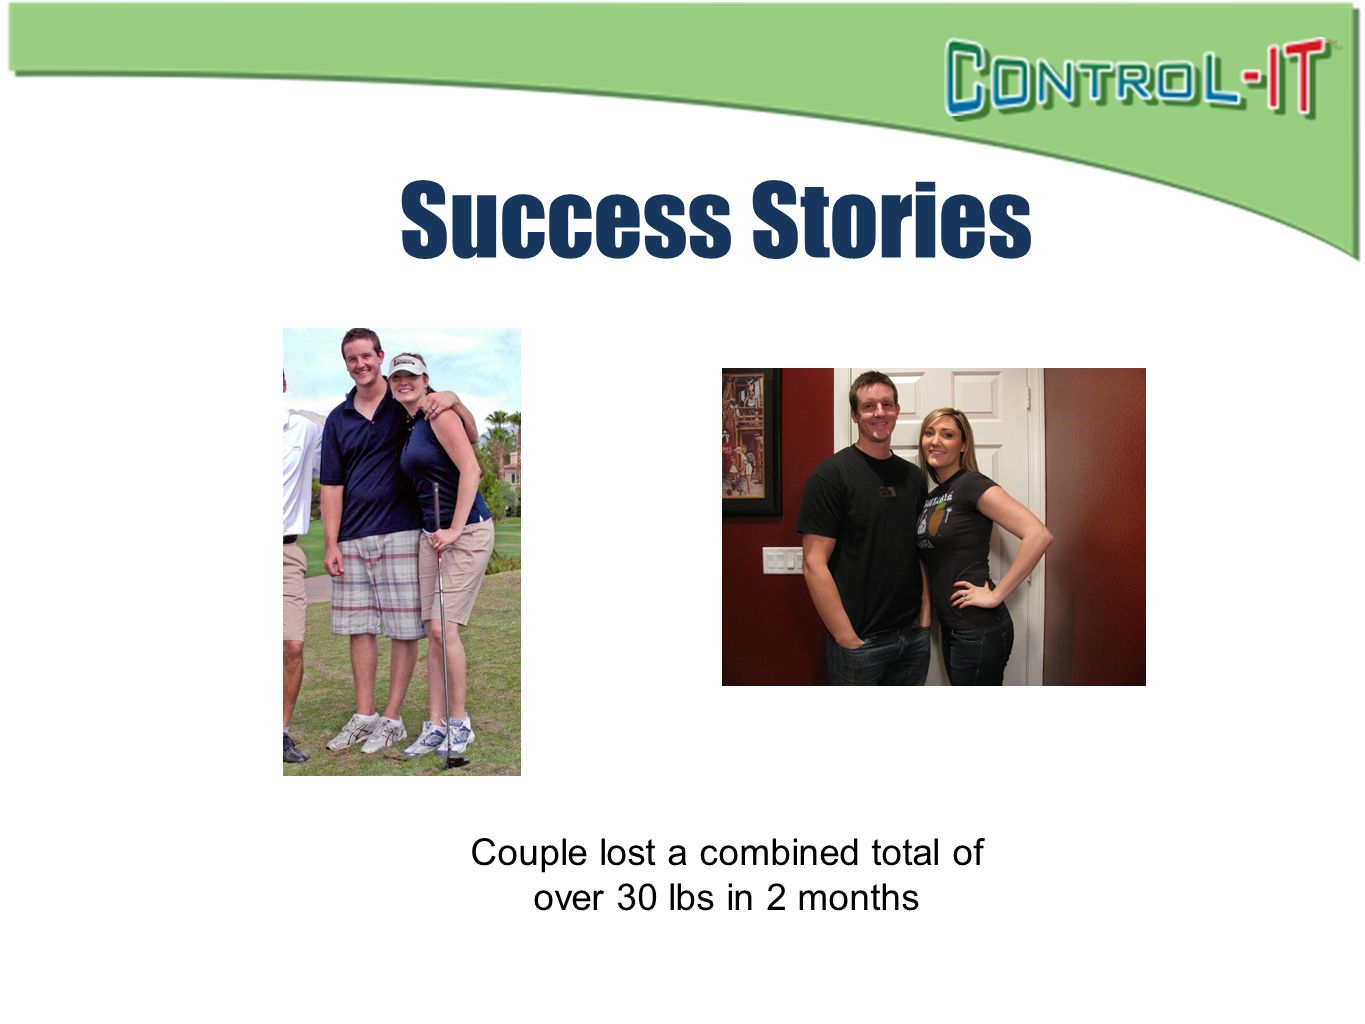 Couple lost a combined total of over 30 lbs in 2 months